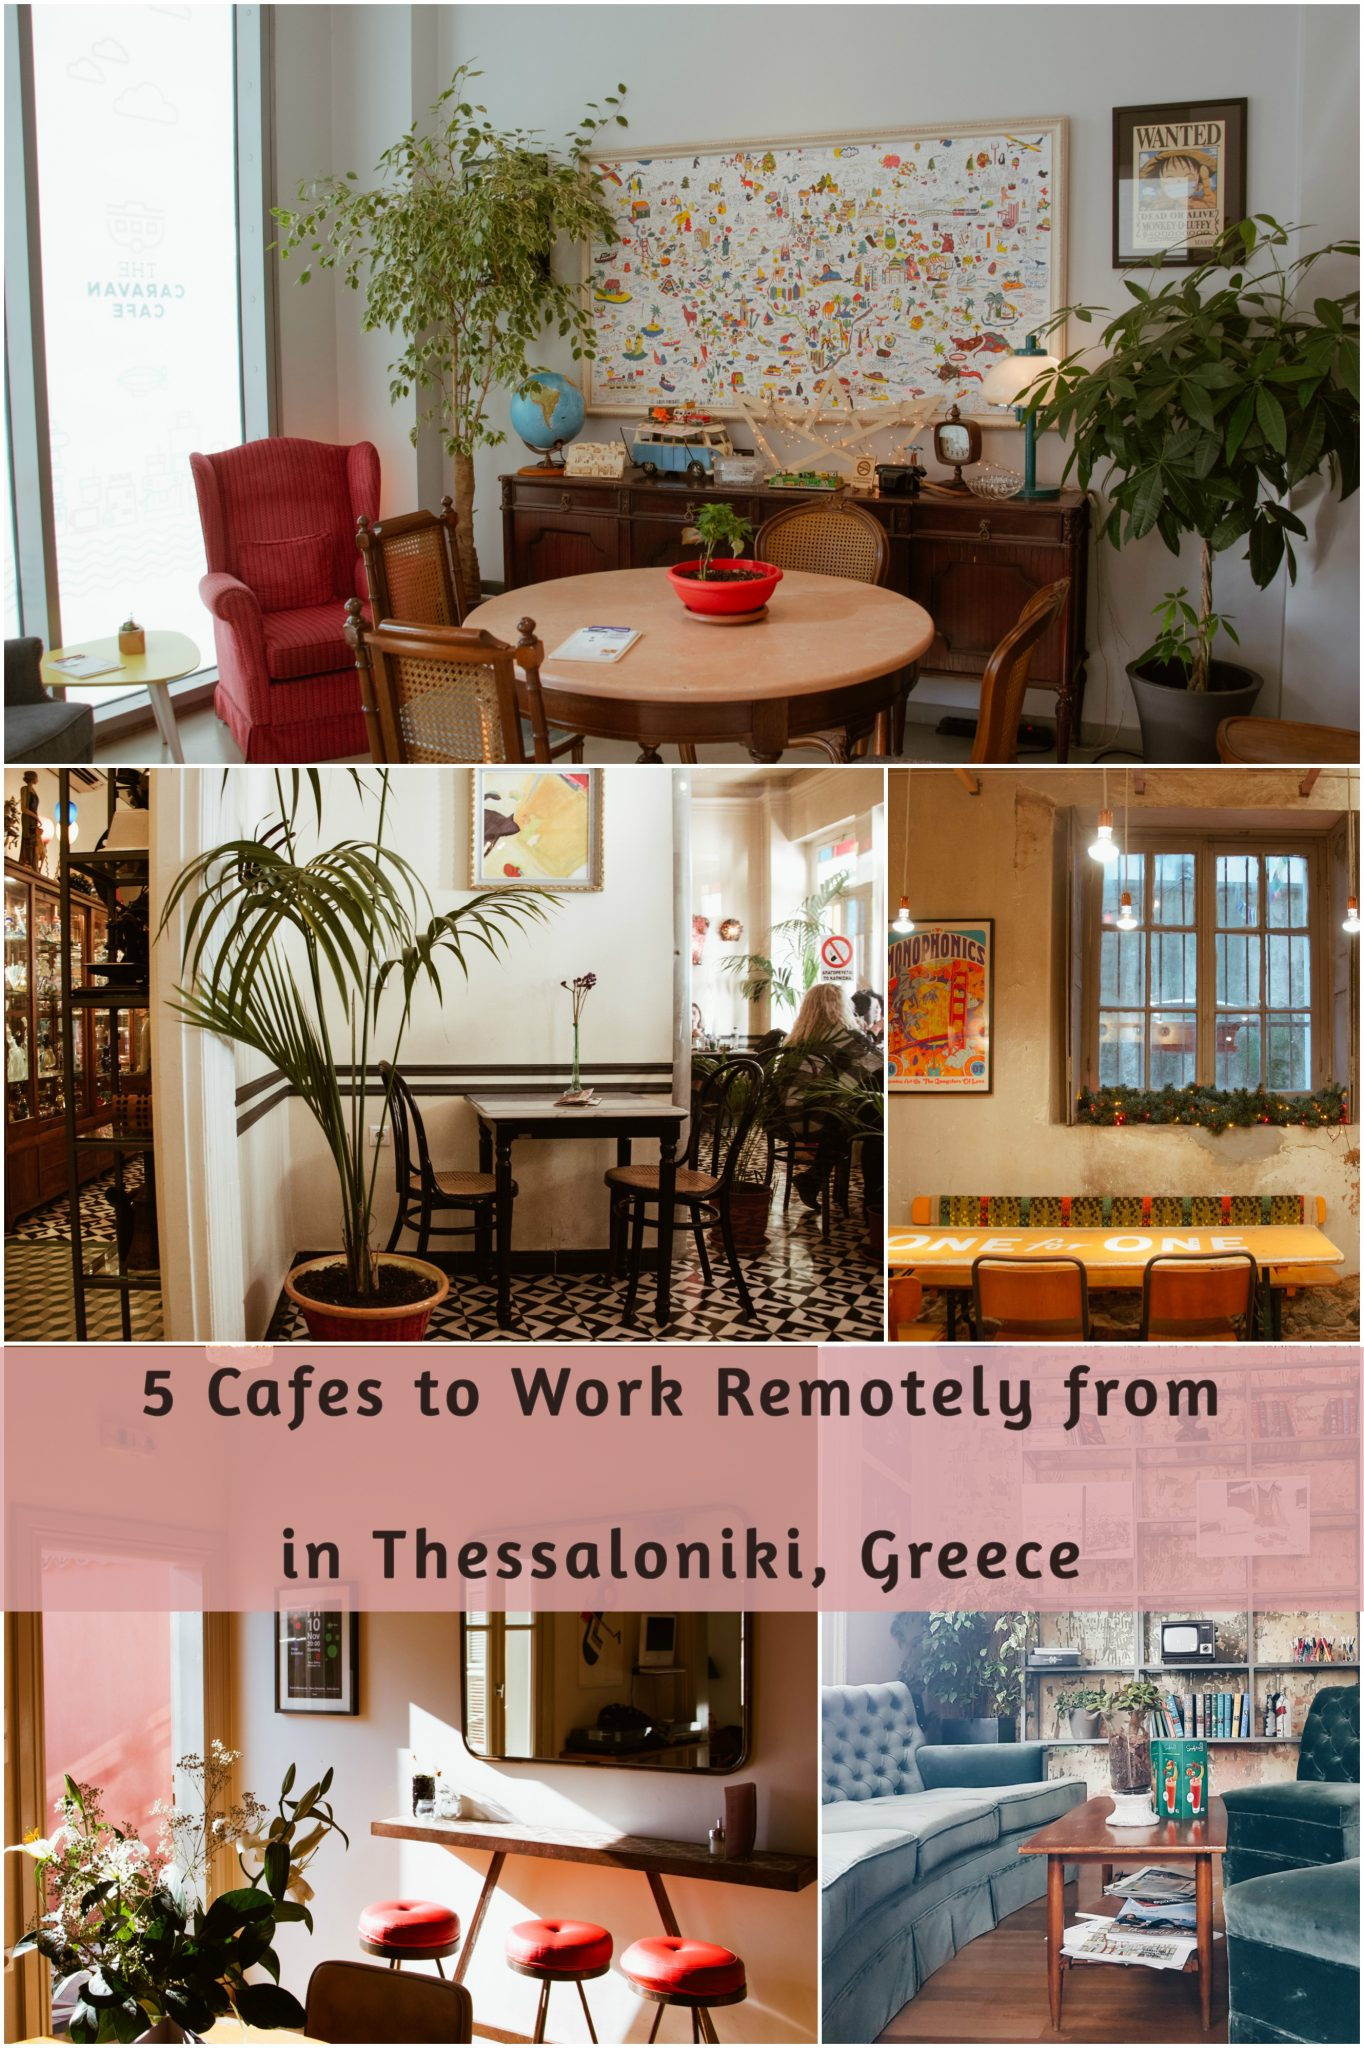 Cafes to Work Remotely from in Thessaloniki, Greece